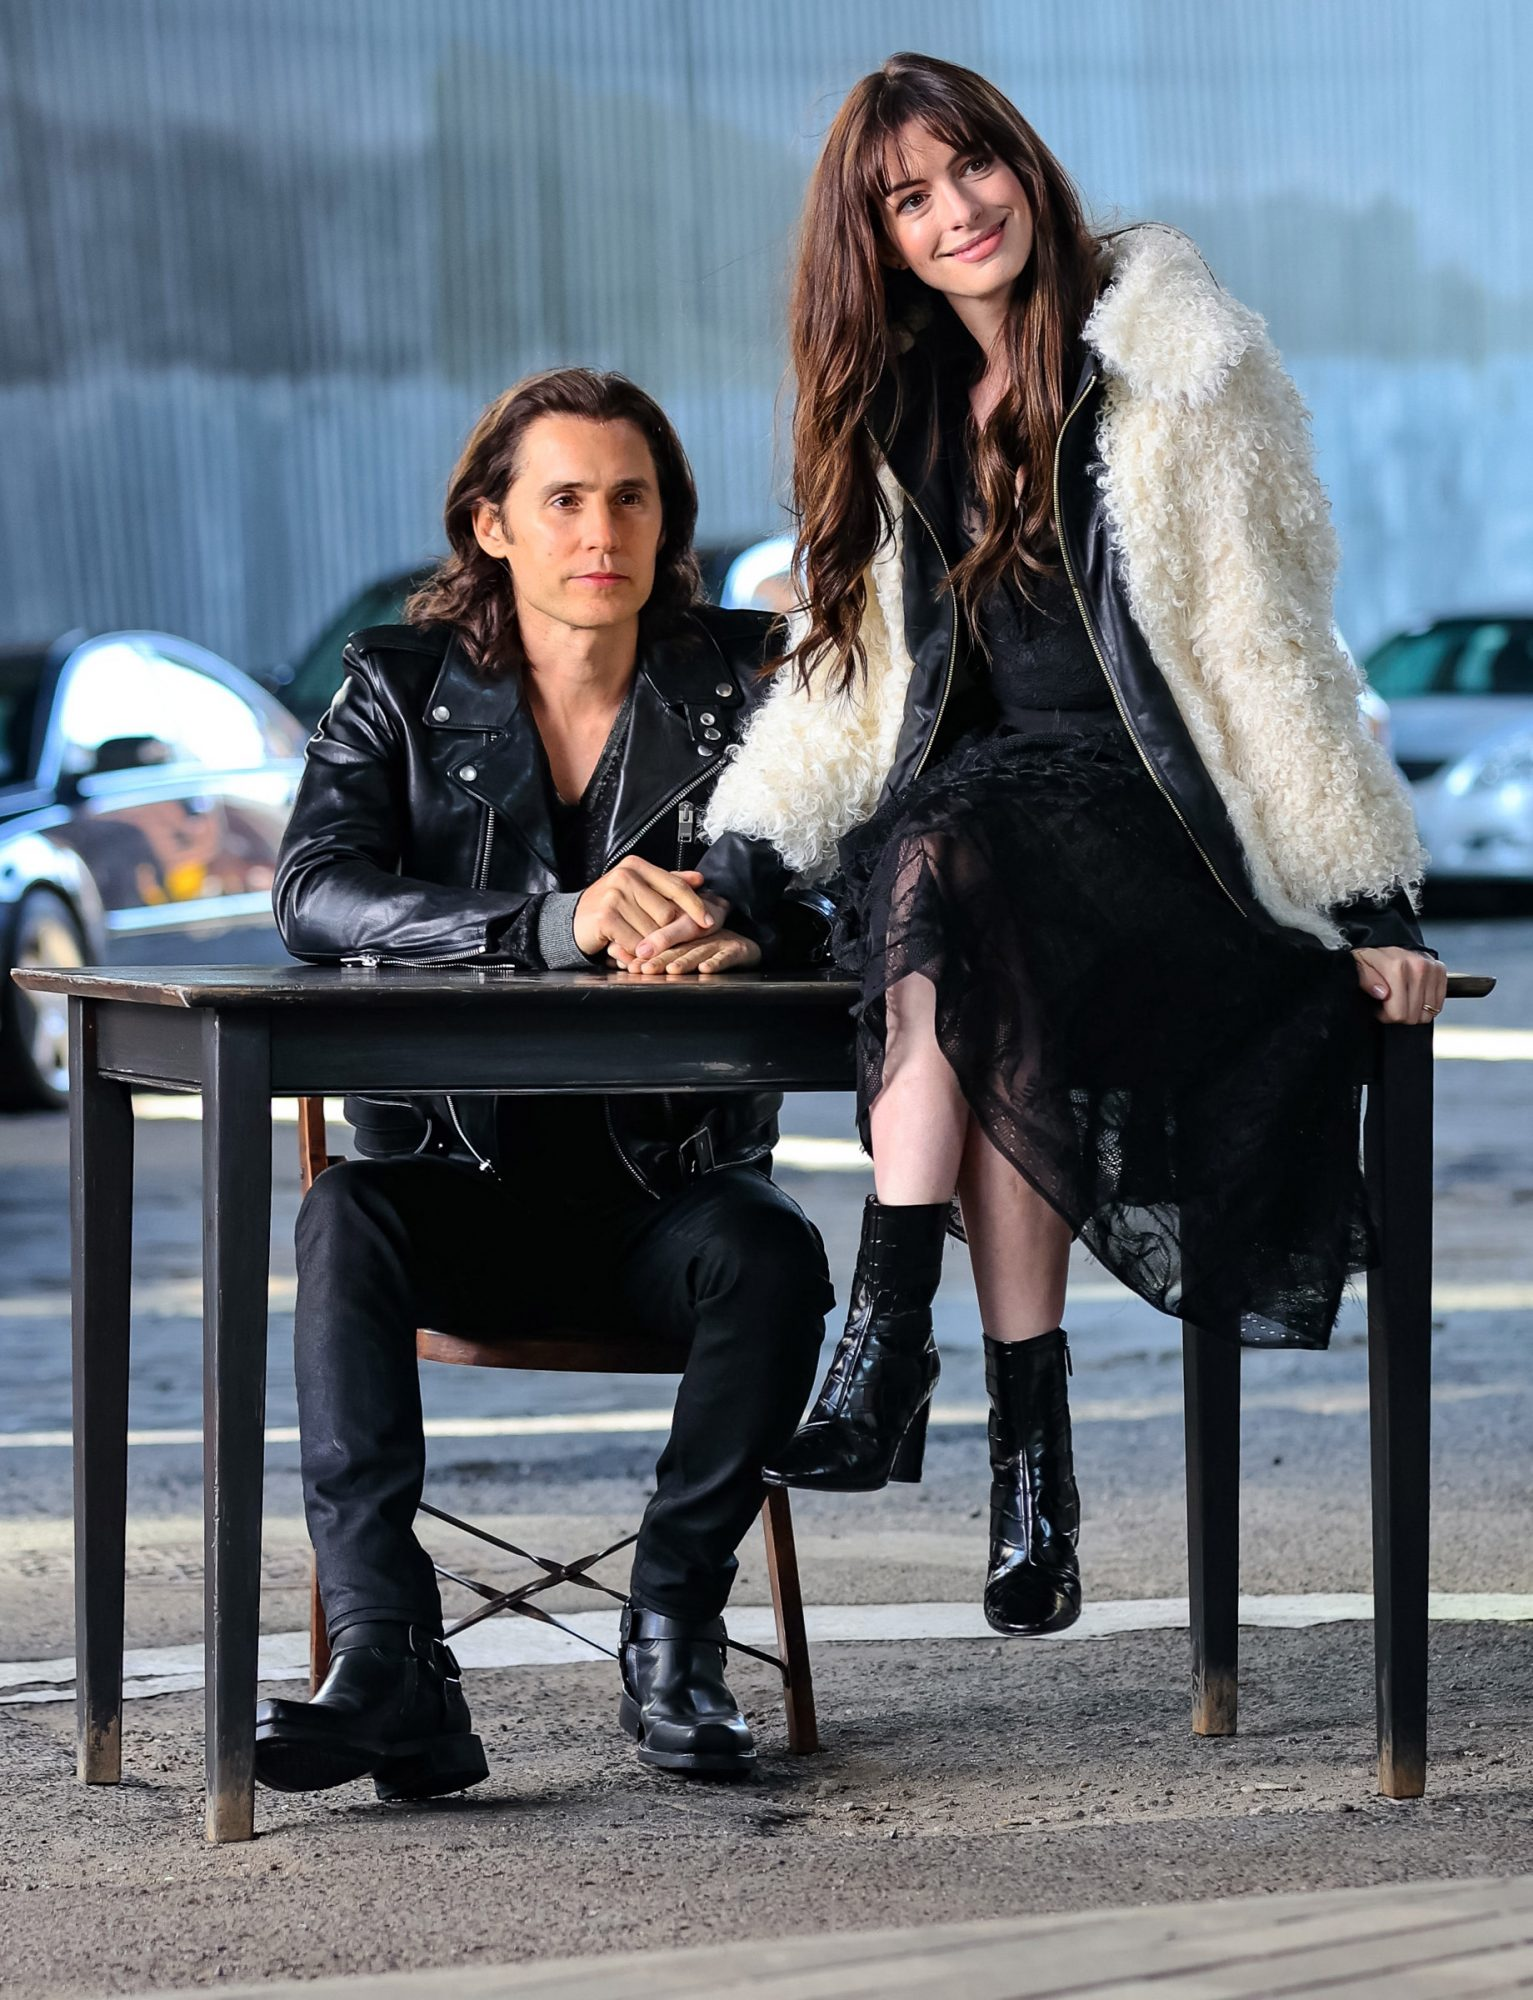 Atmosphere is seen at the film set of the 'WeCrashed' TV Series in New York City. 02 Aug 2021 Pictured: Jared Leto,Anne Hathaway.